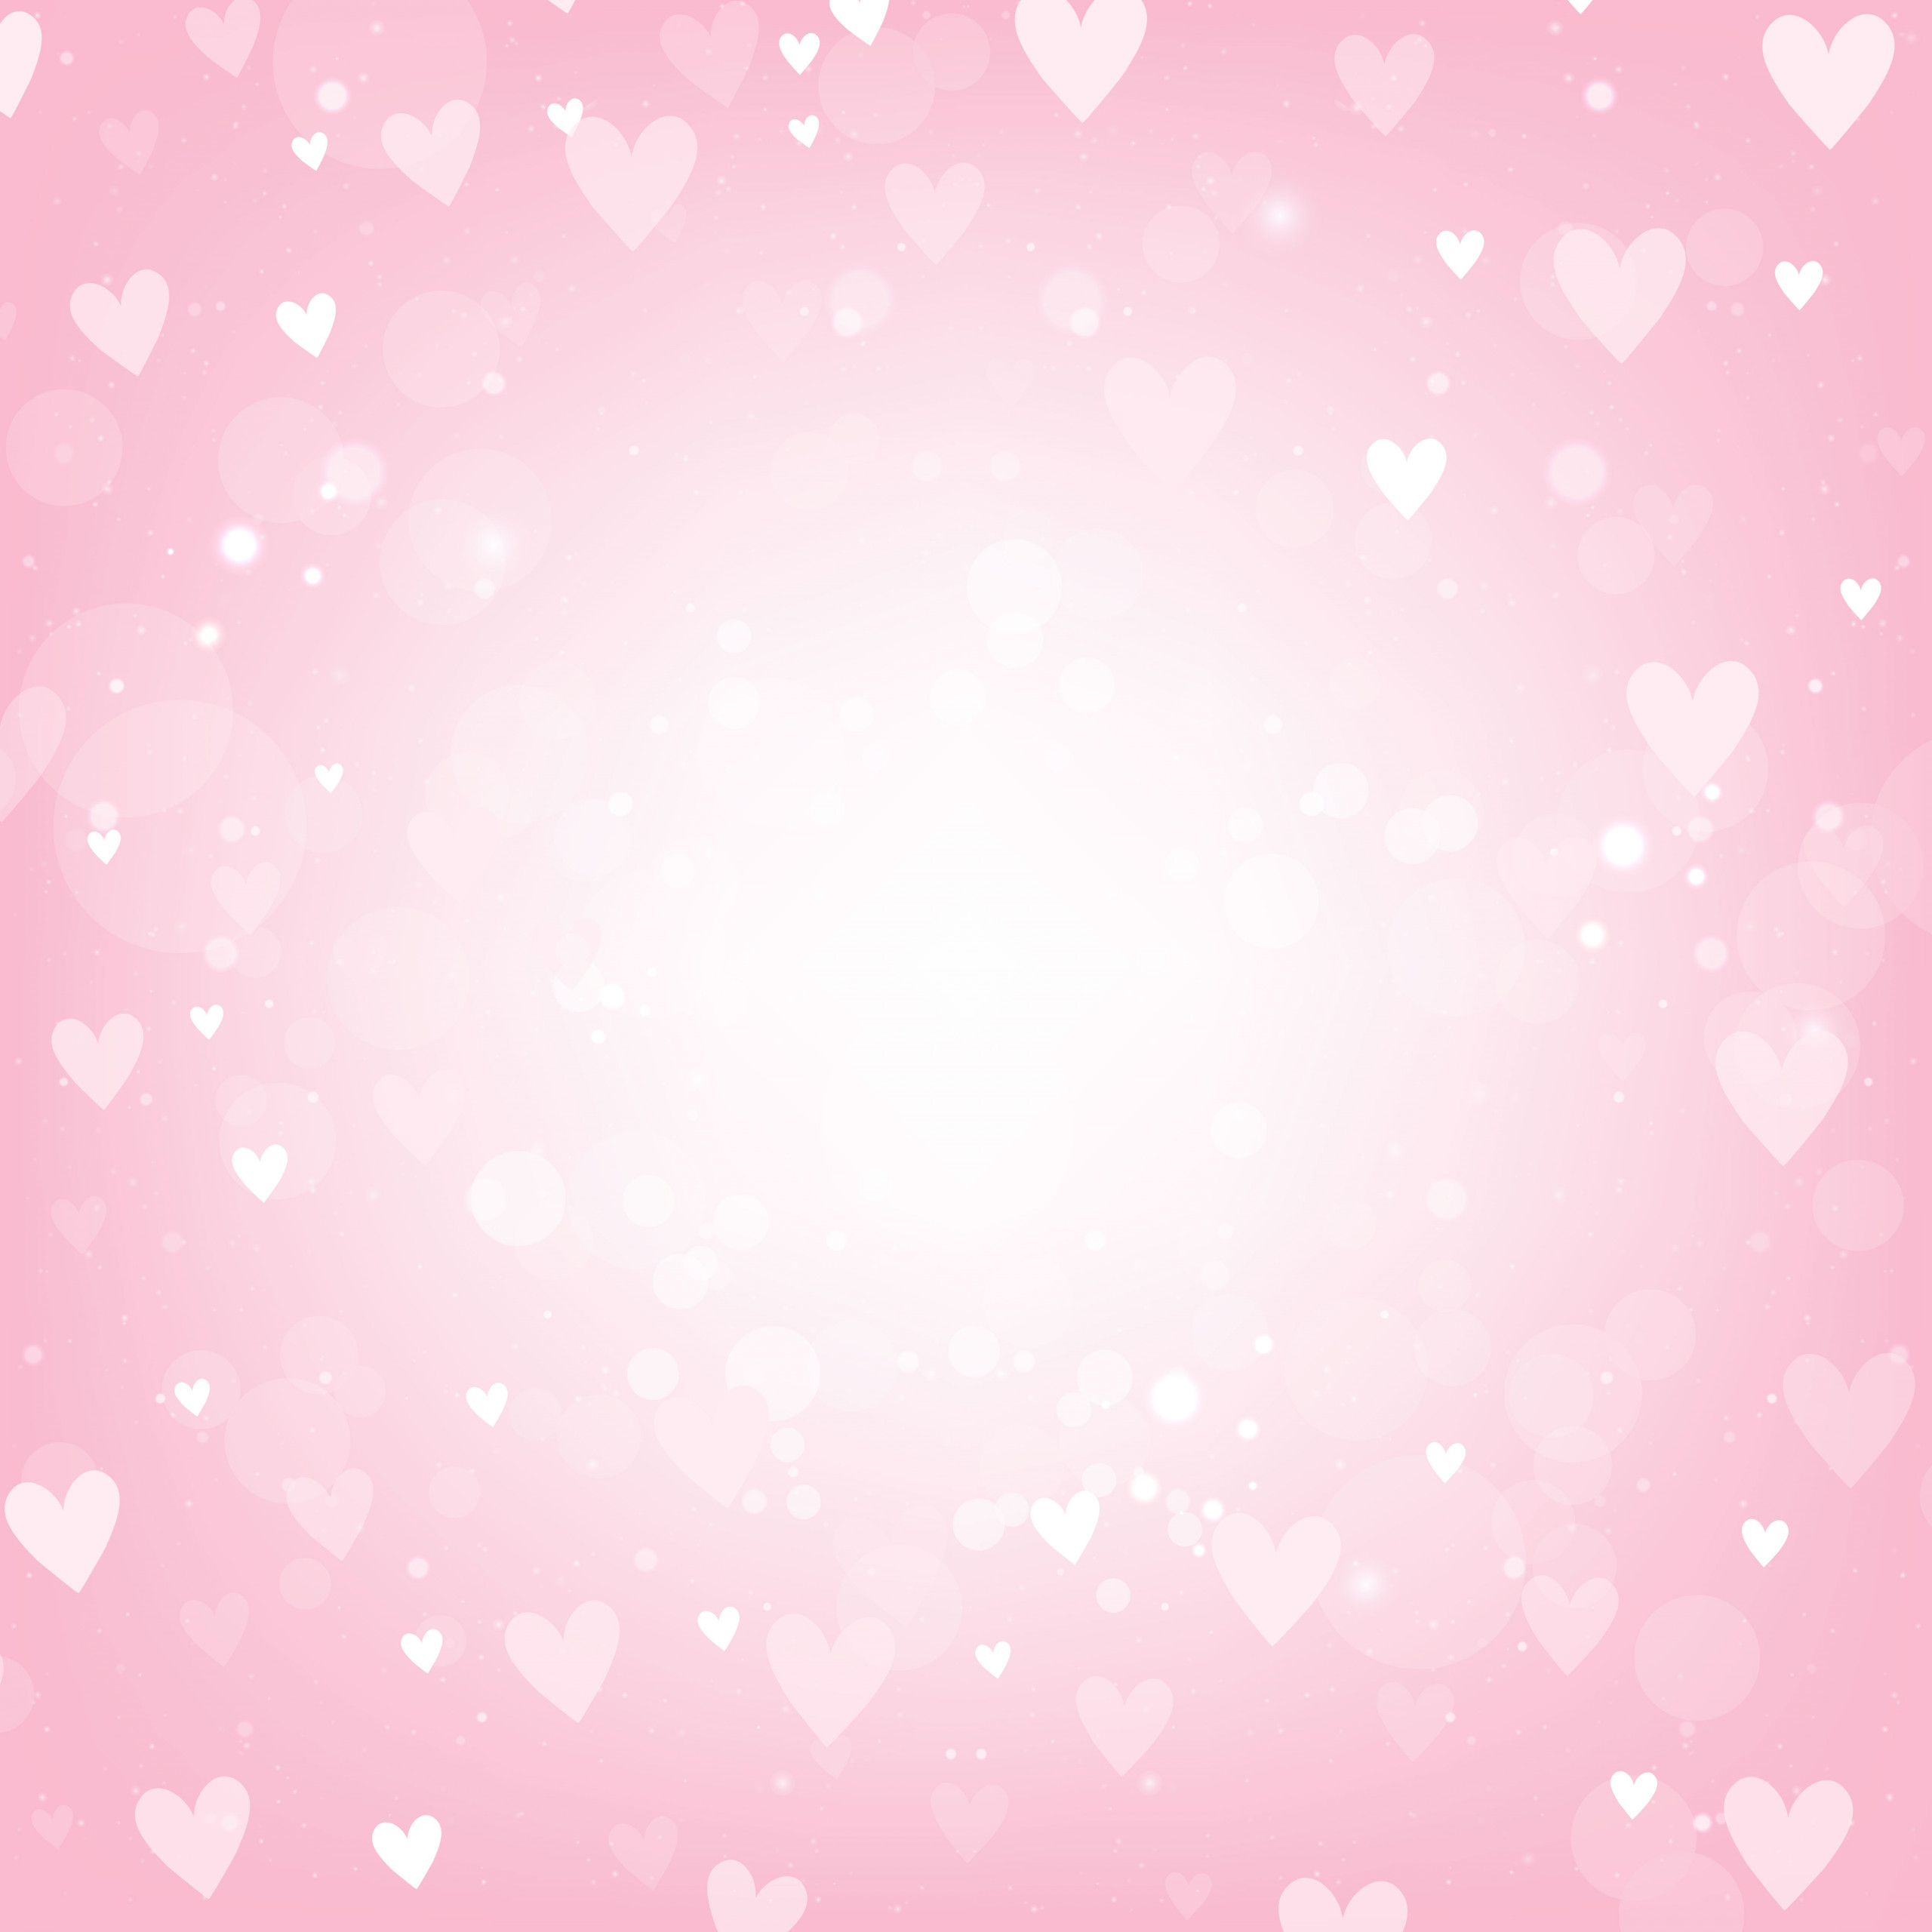 vector pink valentines day background with hearts and bokeh lights